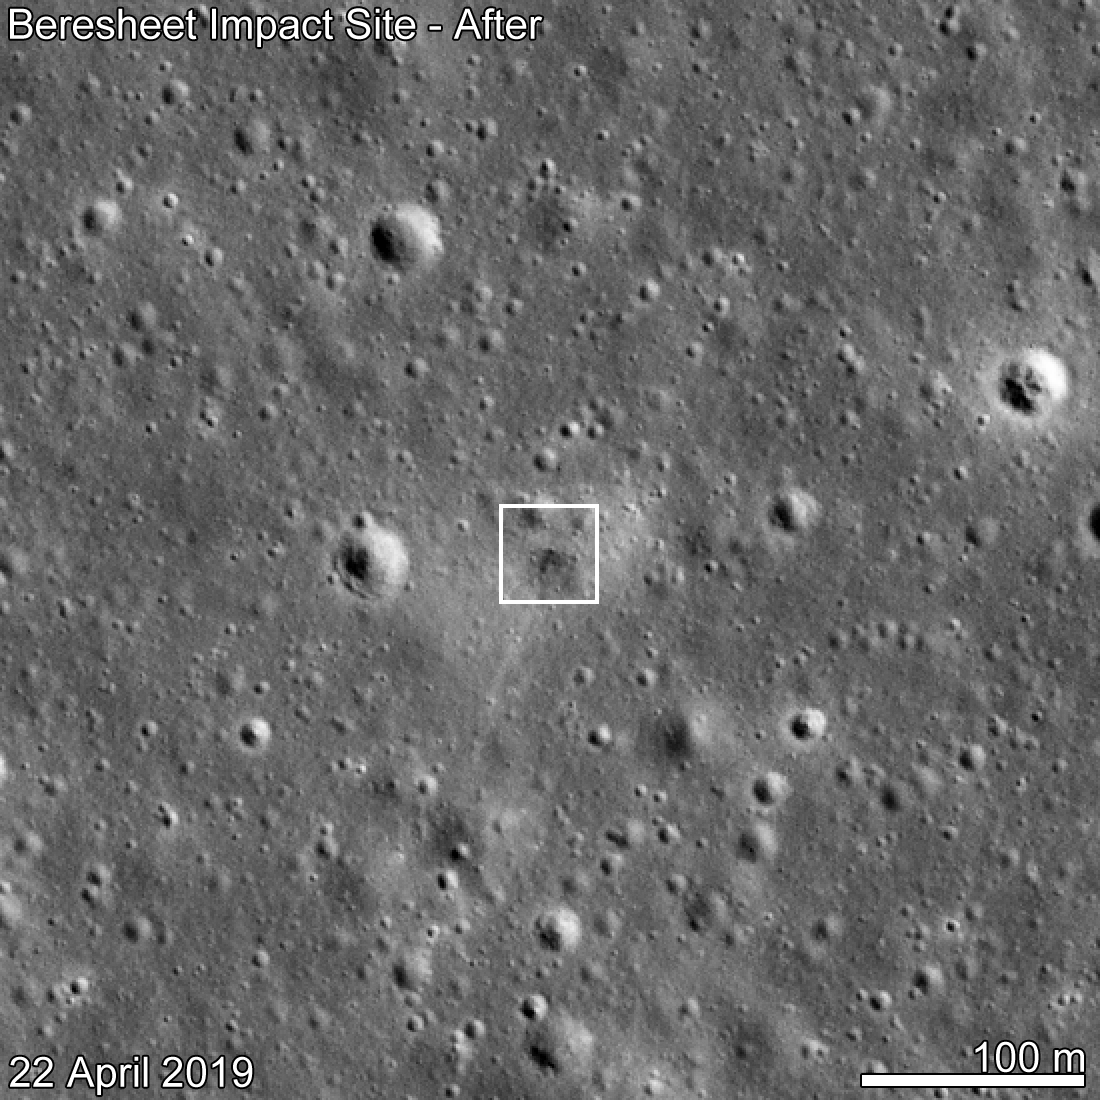 SpaceIL Beresheet crash site as seen by LROC eleven days after the attempted landing. Date in lower left indicates when the NAC image was acquired, M1310536929R.